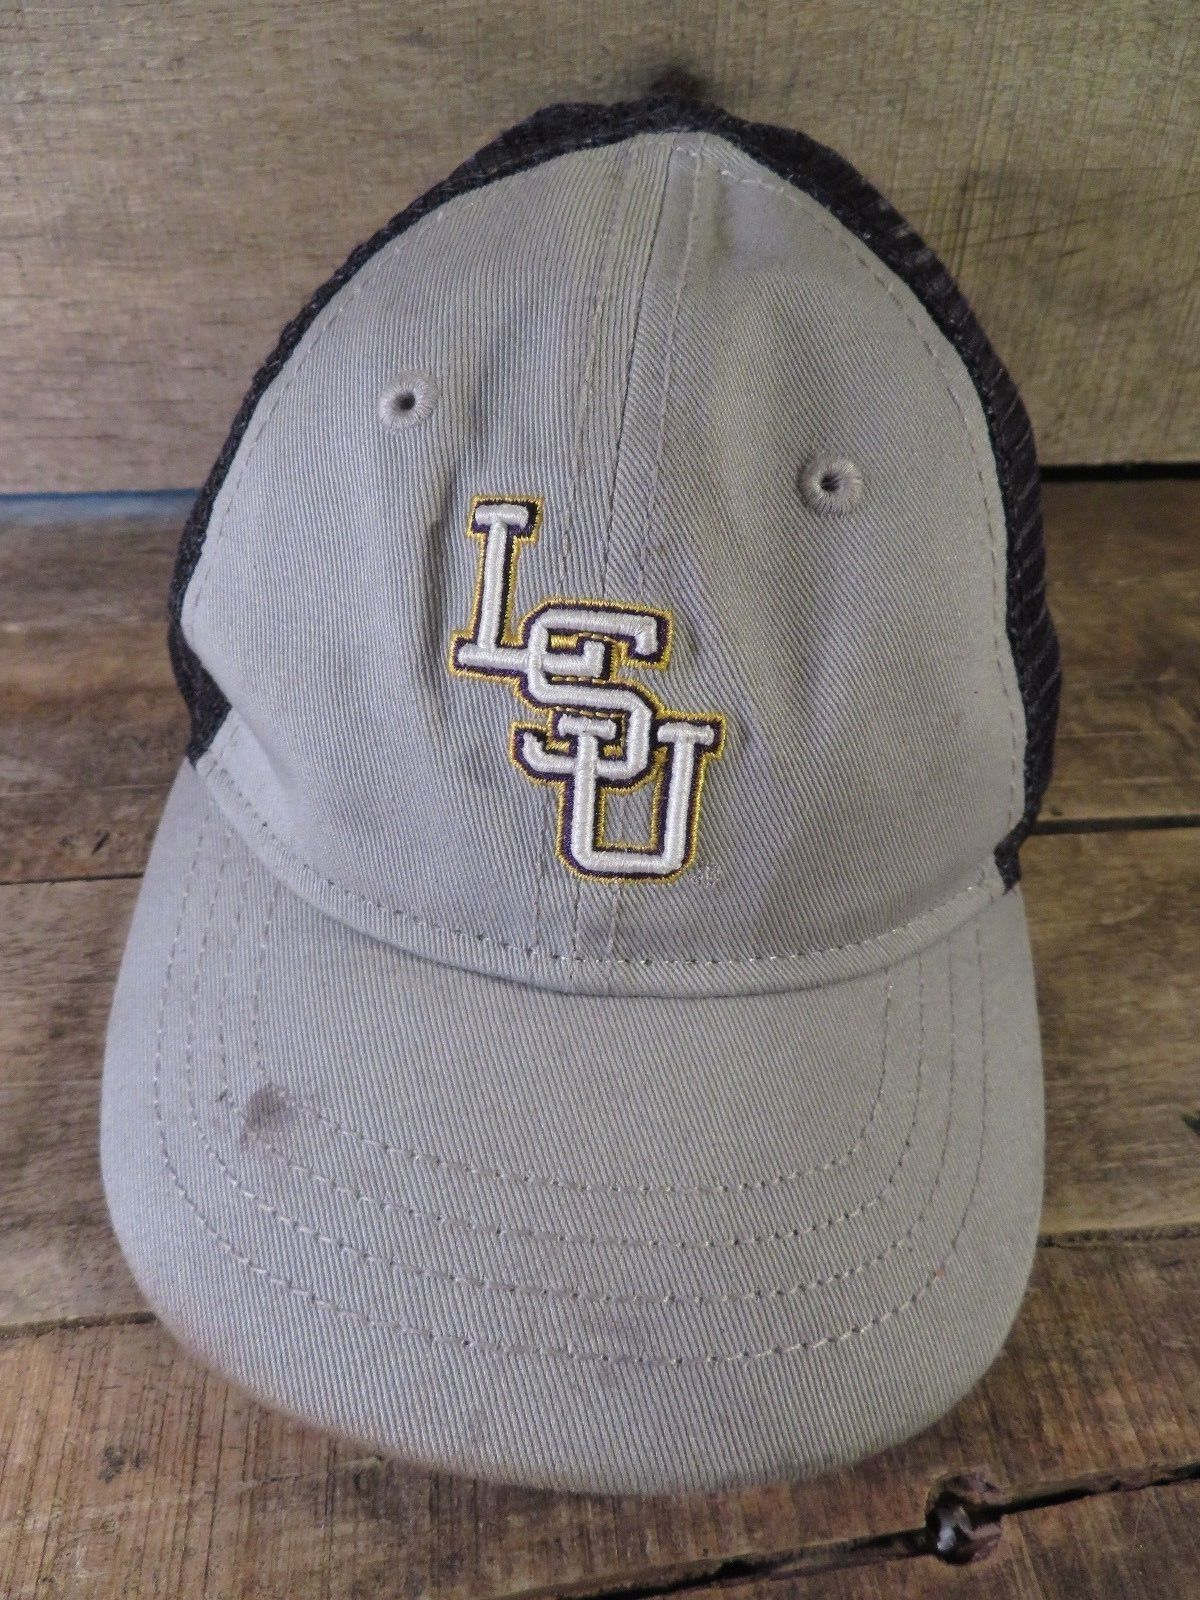 Lsu Louisiana State University New Era Kleinkind Kappe Hut